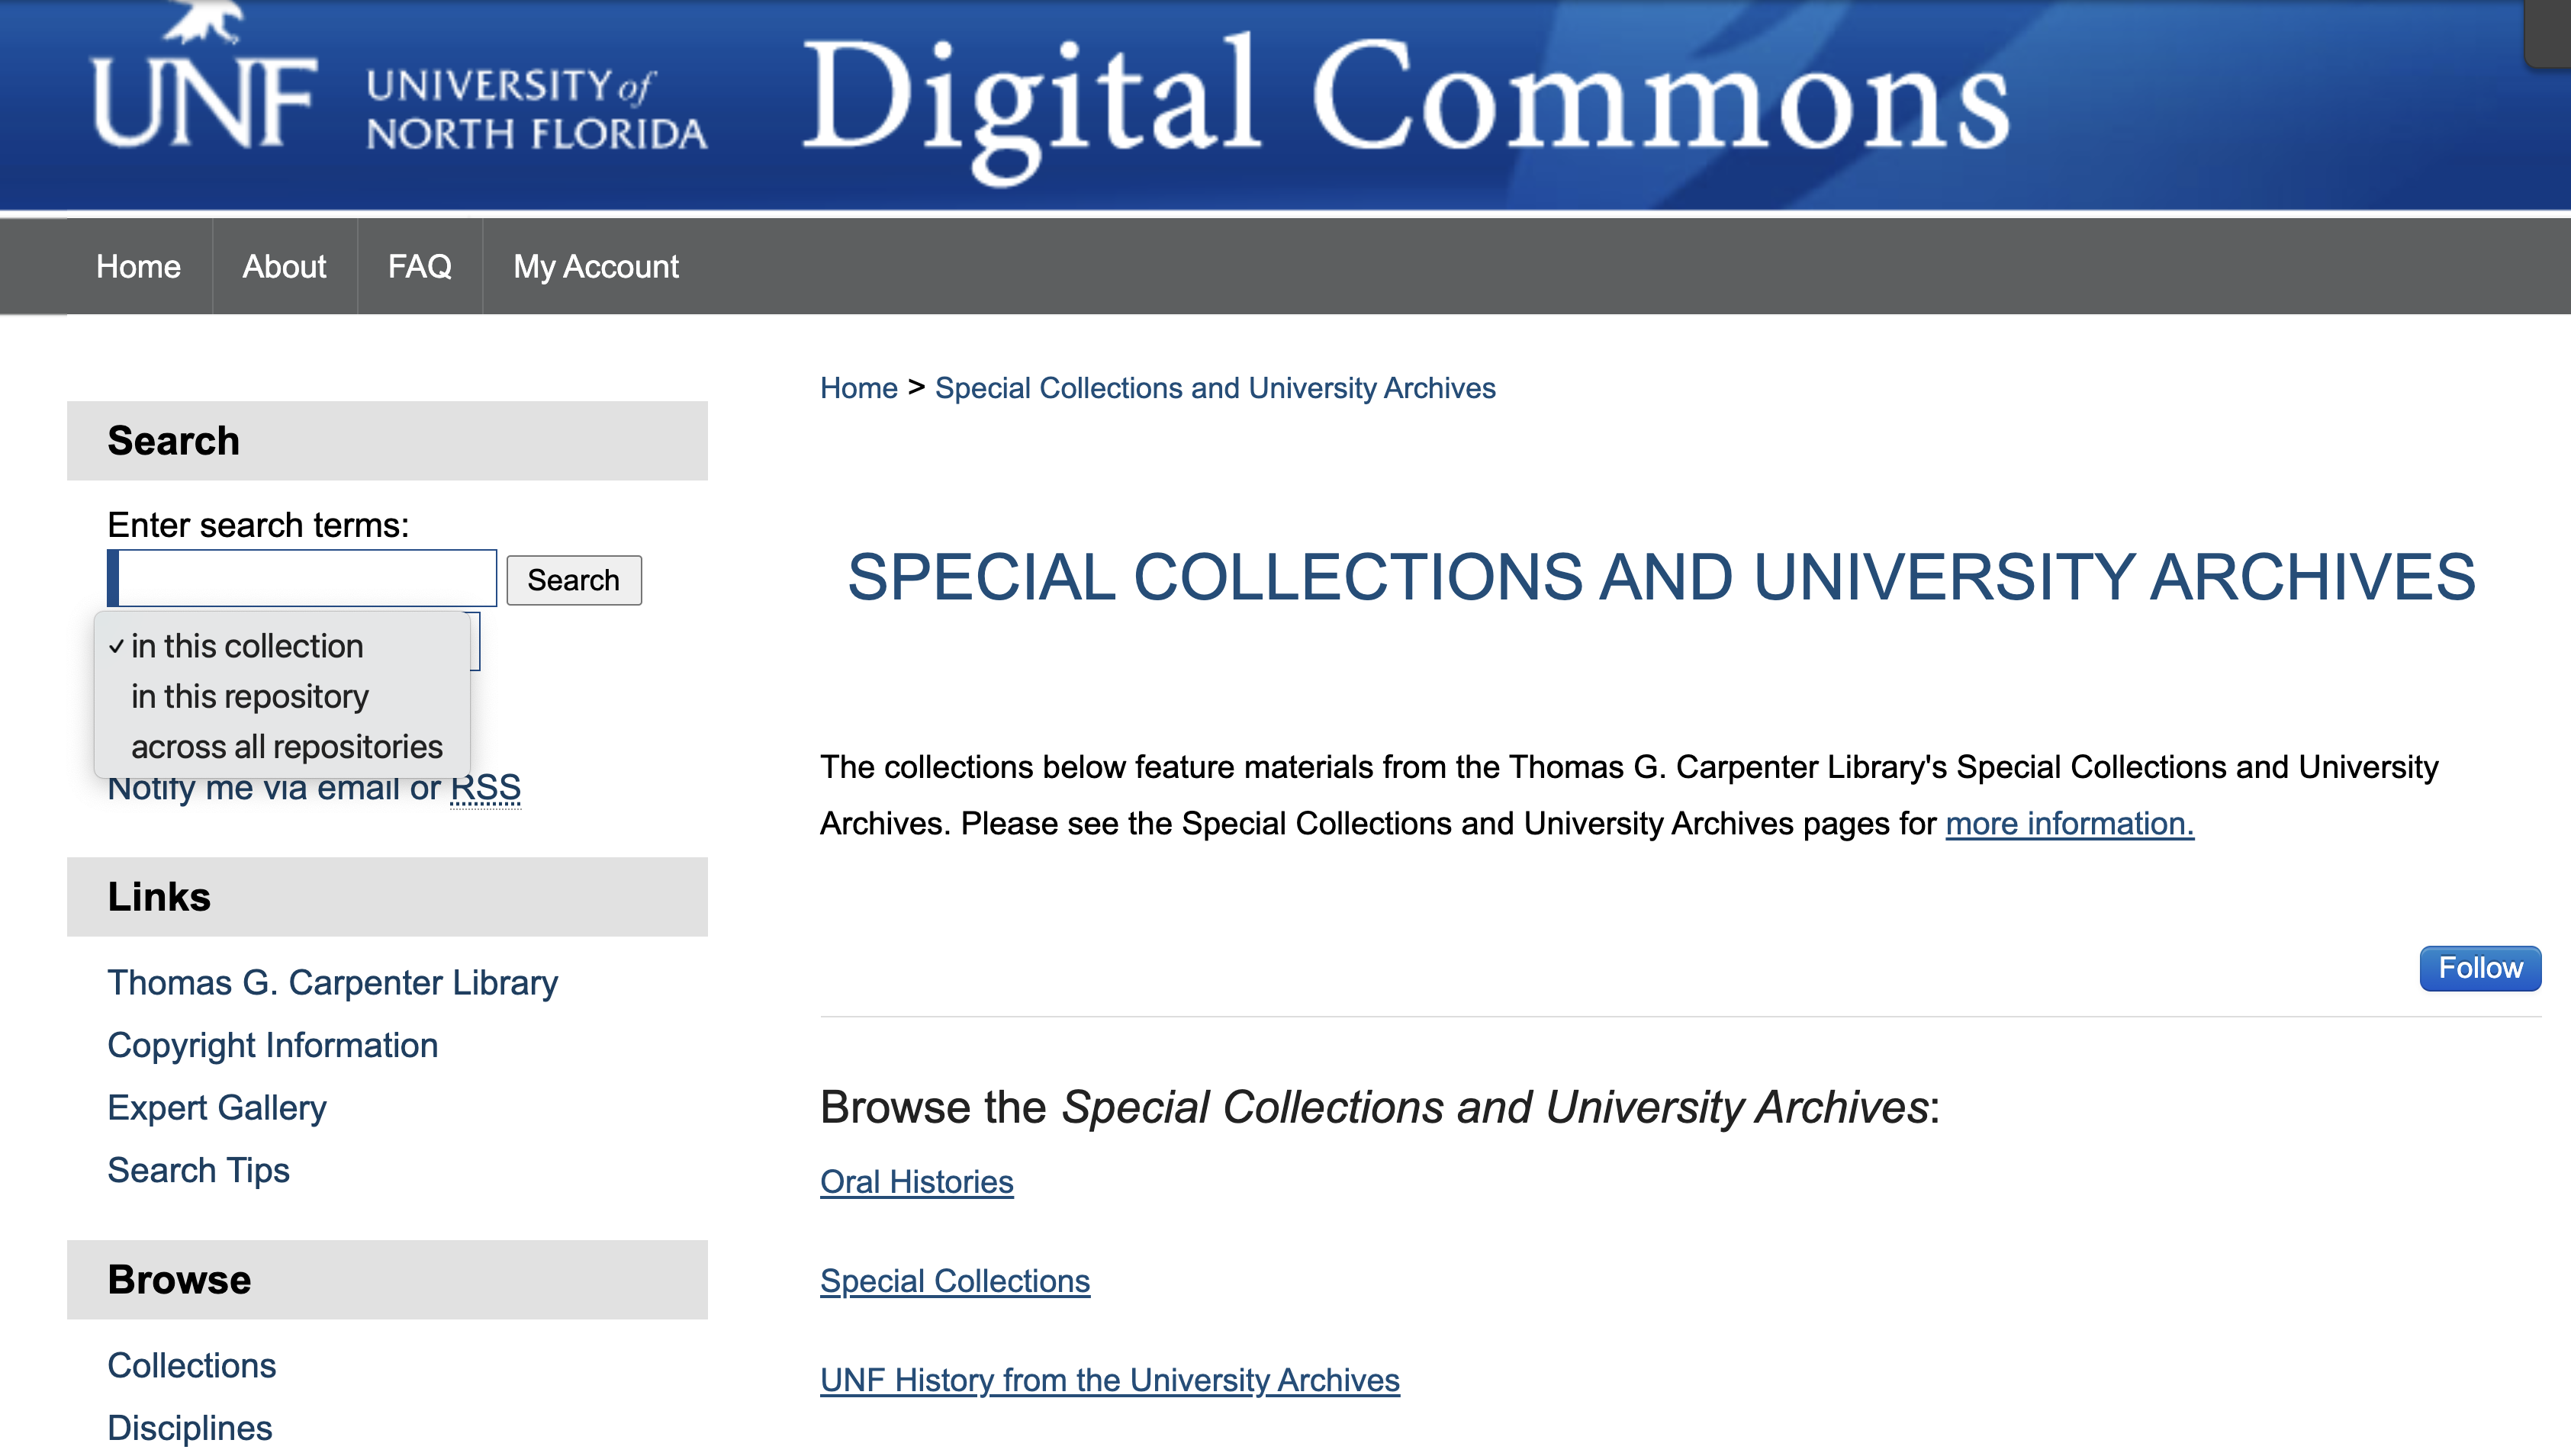 image of search options in UNF Digital Commons